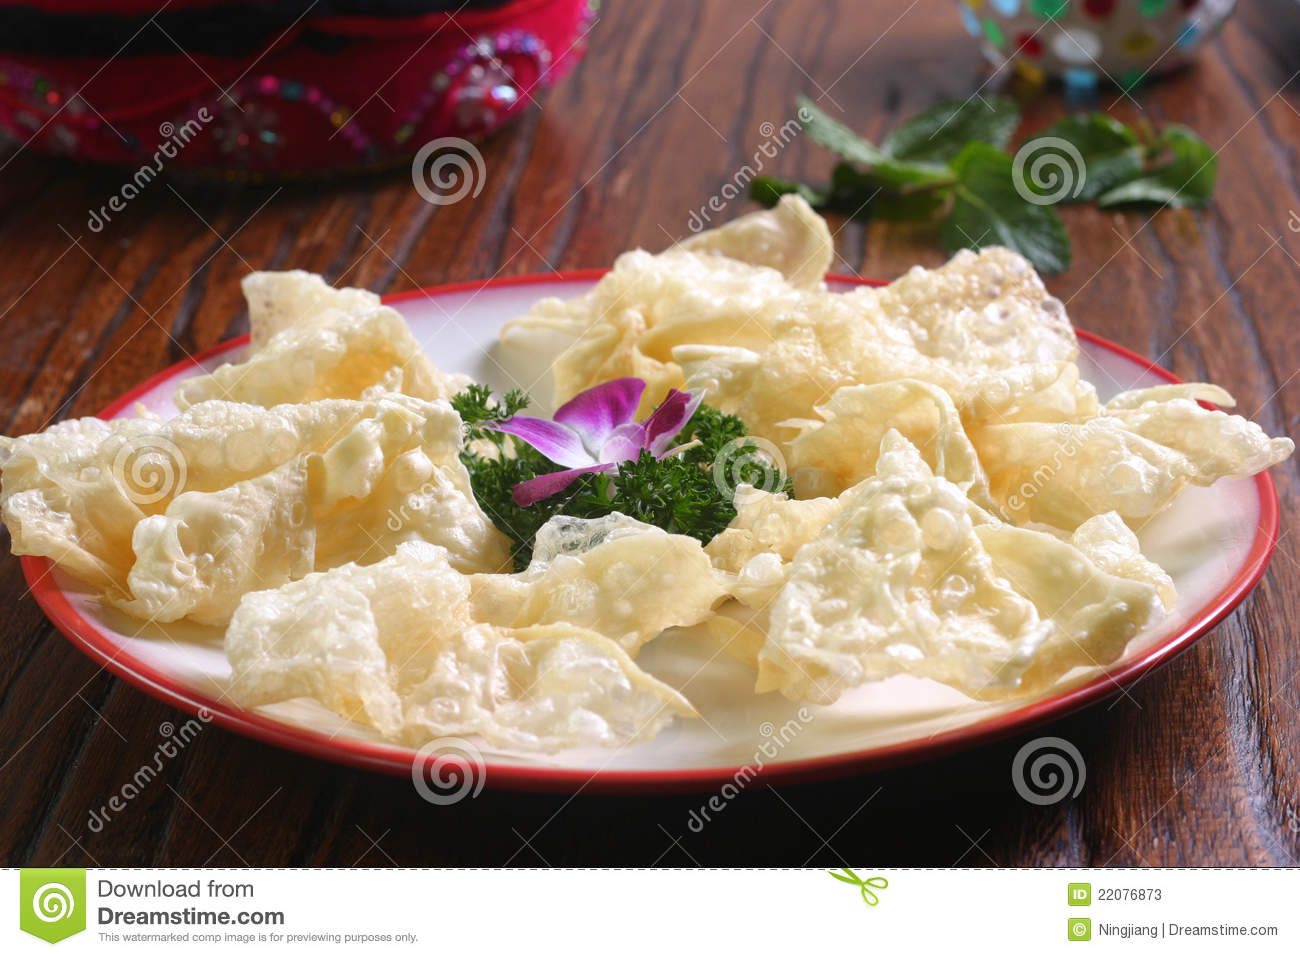 More similar stock images of ` Chinese Shrimp Sup Dumpling `